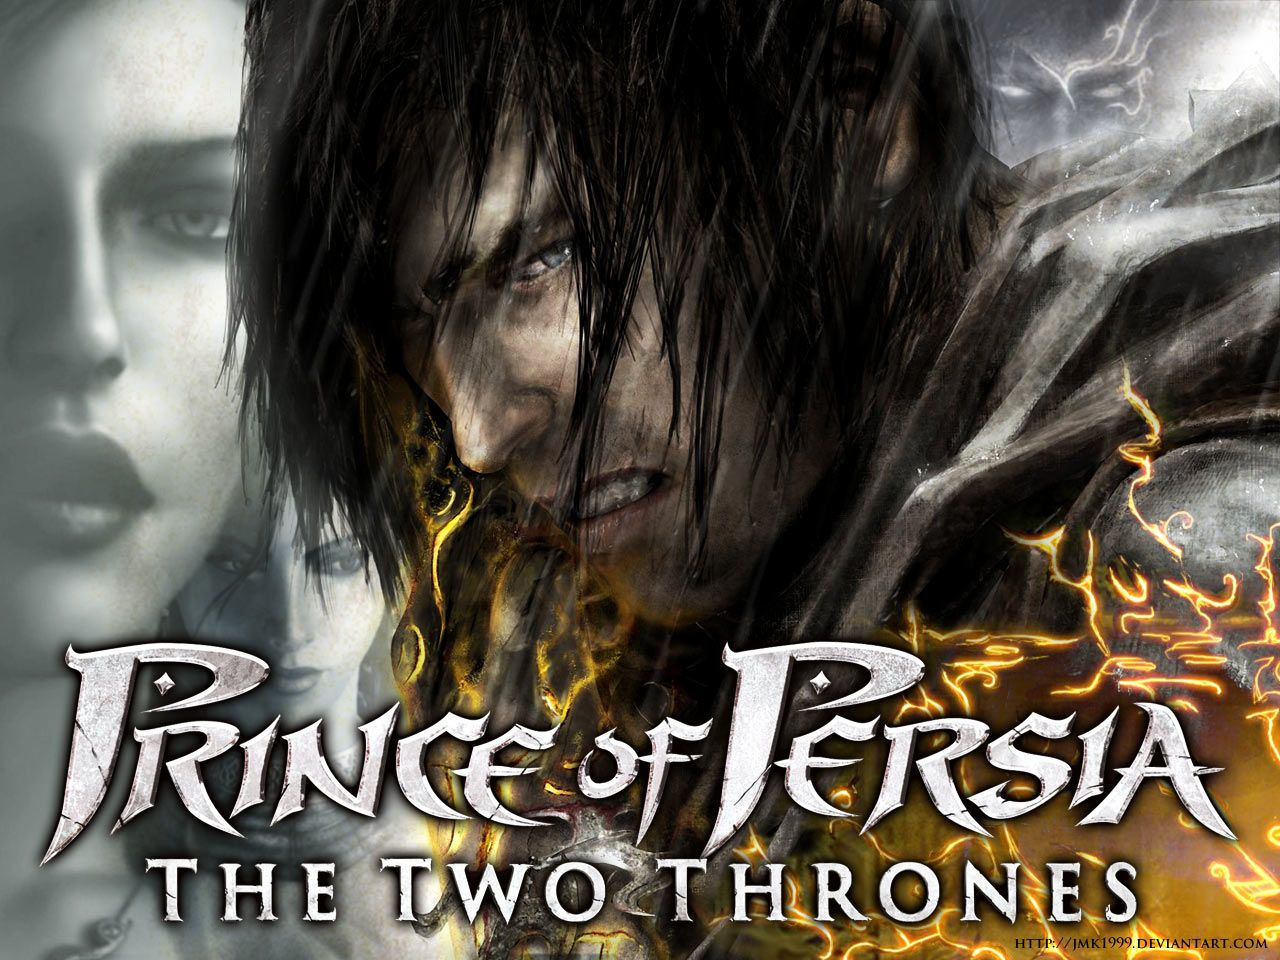 5.jpg - Prince of Persia: The Two Thrones